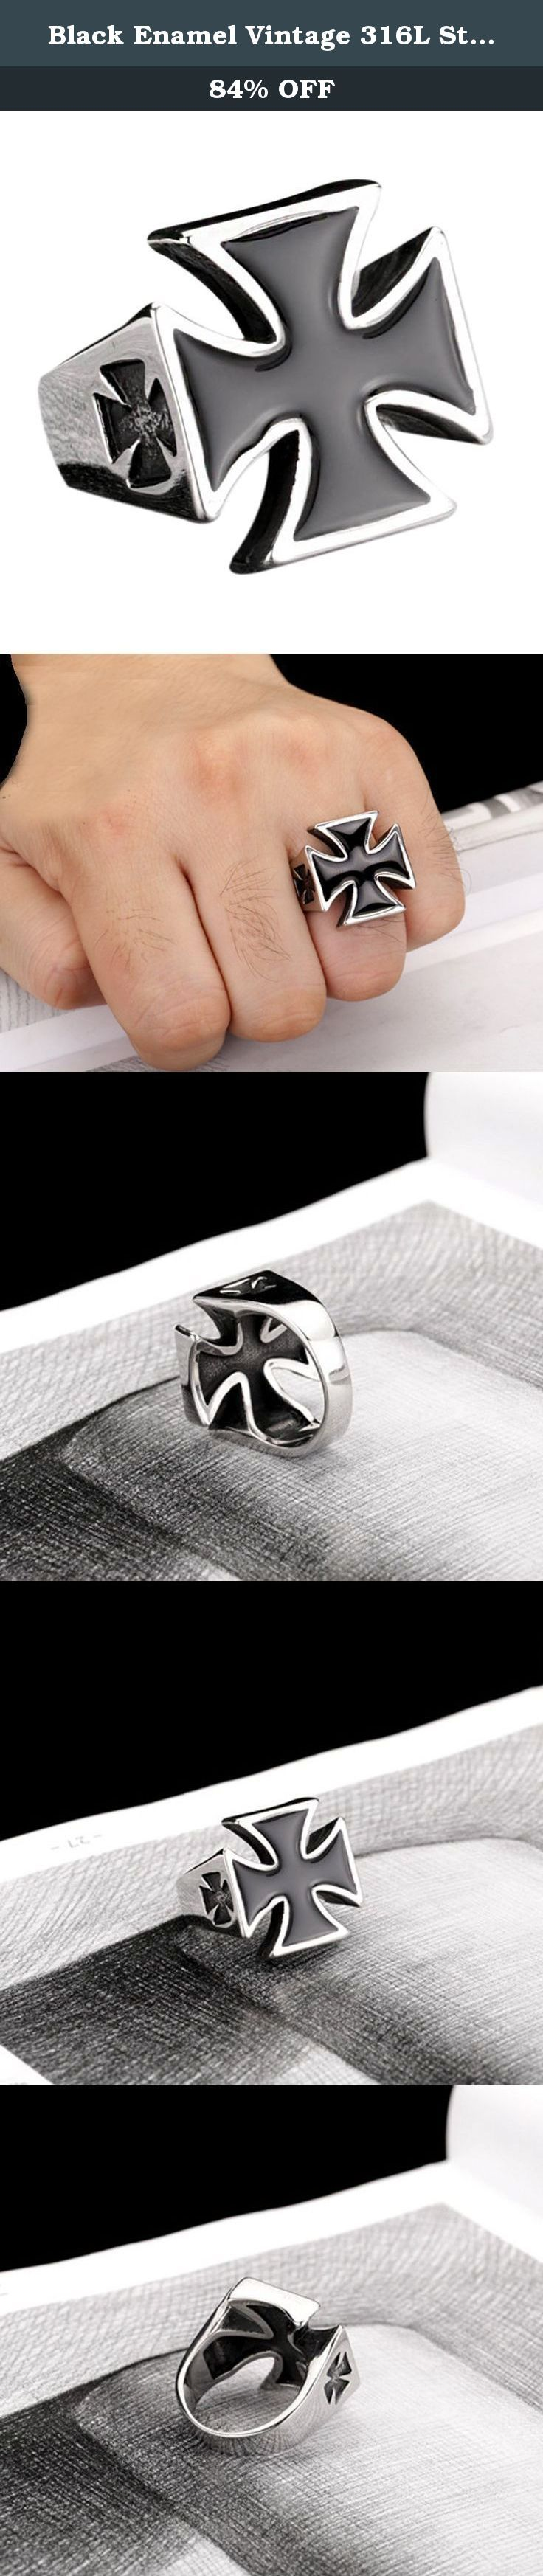 Black Enamel Vintage 316L Stainless Steel Never Fade Iron Cross Men's Punk Retro Ring Size 7-13. Why choose Stainless Steel Jewelry? Stainless Steel jewelry does not tarnish and oxidize, which can last longer than other jewelries. It is able to endure a lot of wear and tear. And it is amazingly hypoallergenic. Such advantages make it a more popular accessory. Shopping Notes: 1. Currently all of our items are sent from China, which usually 7-15 business days. Tracking number is provided…